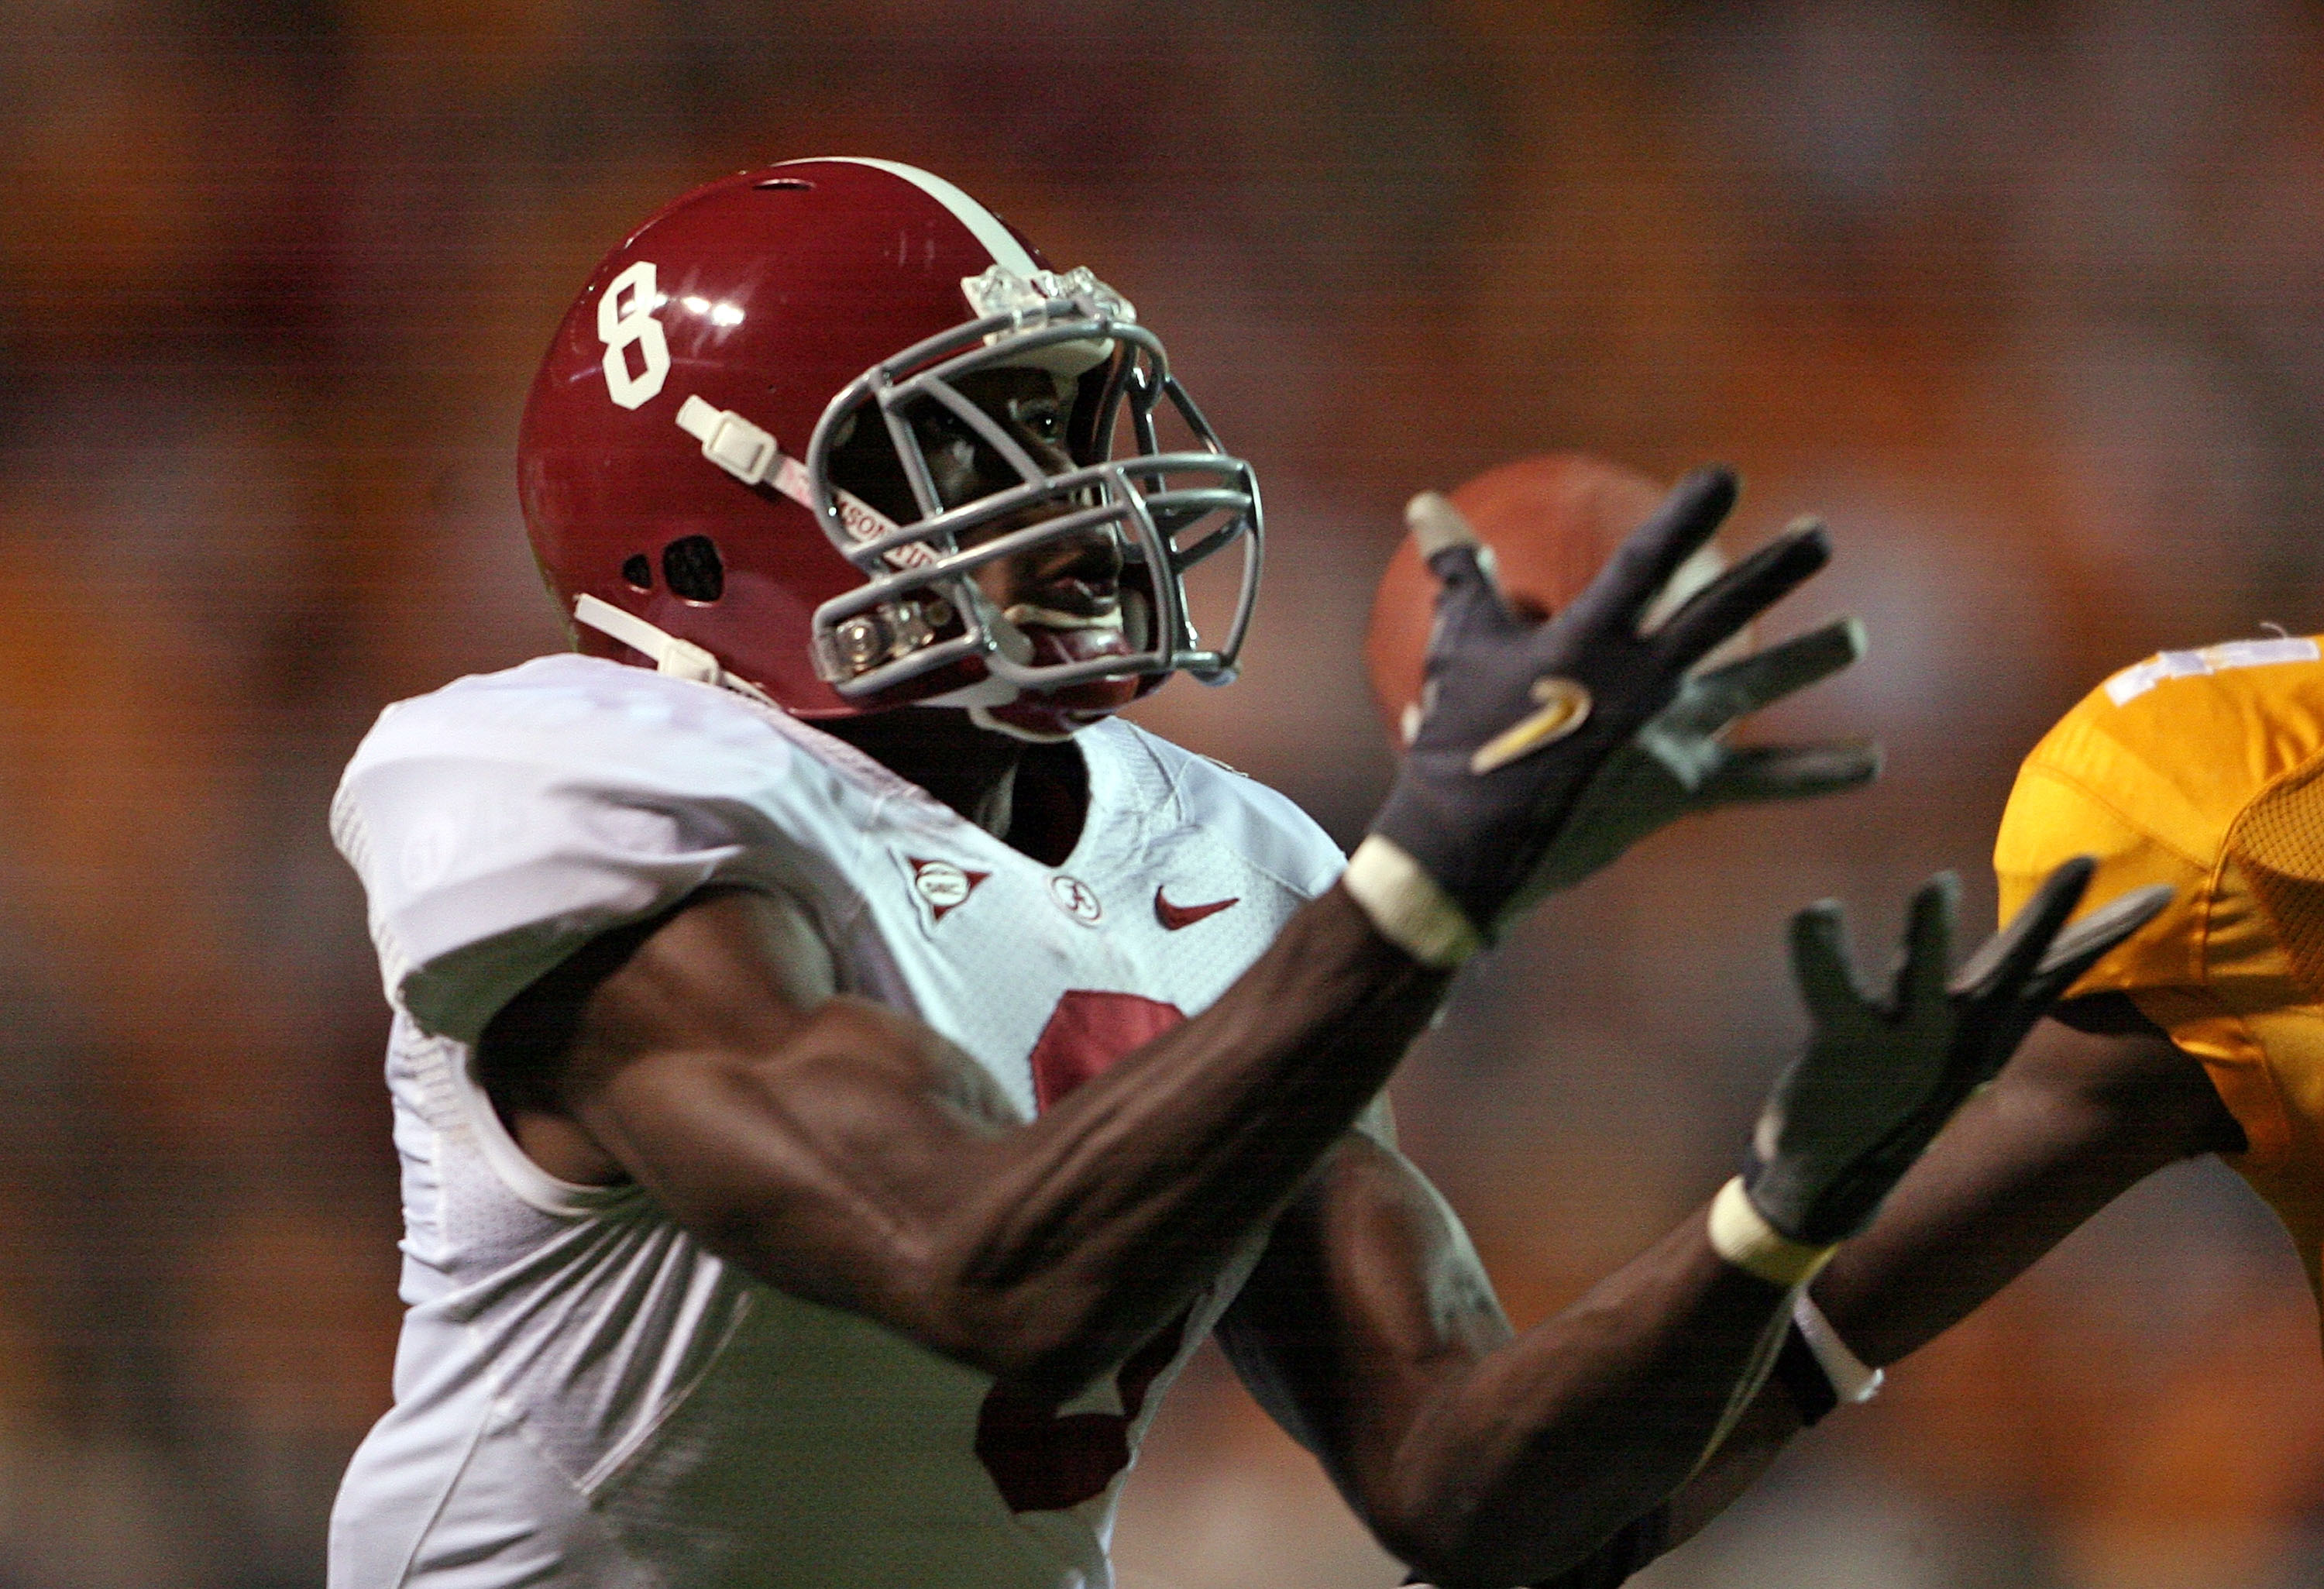 KNOXVILLE, TN - OCTOBER 25:  Julio Jones #8 of the Alabama Crimson Tide catches a pass during the game against the Tennessee Volunteers at Neyland Stadium on October 25, 2008 in Knoxville, Tennessee.  (Photo by Andy Lyons/Getty Images)